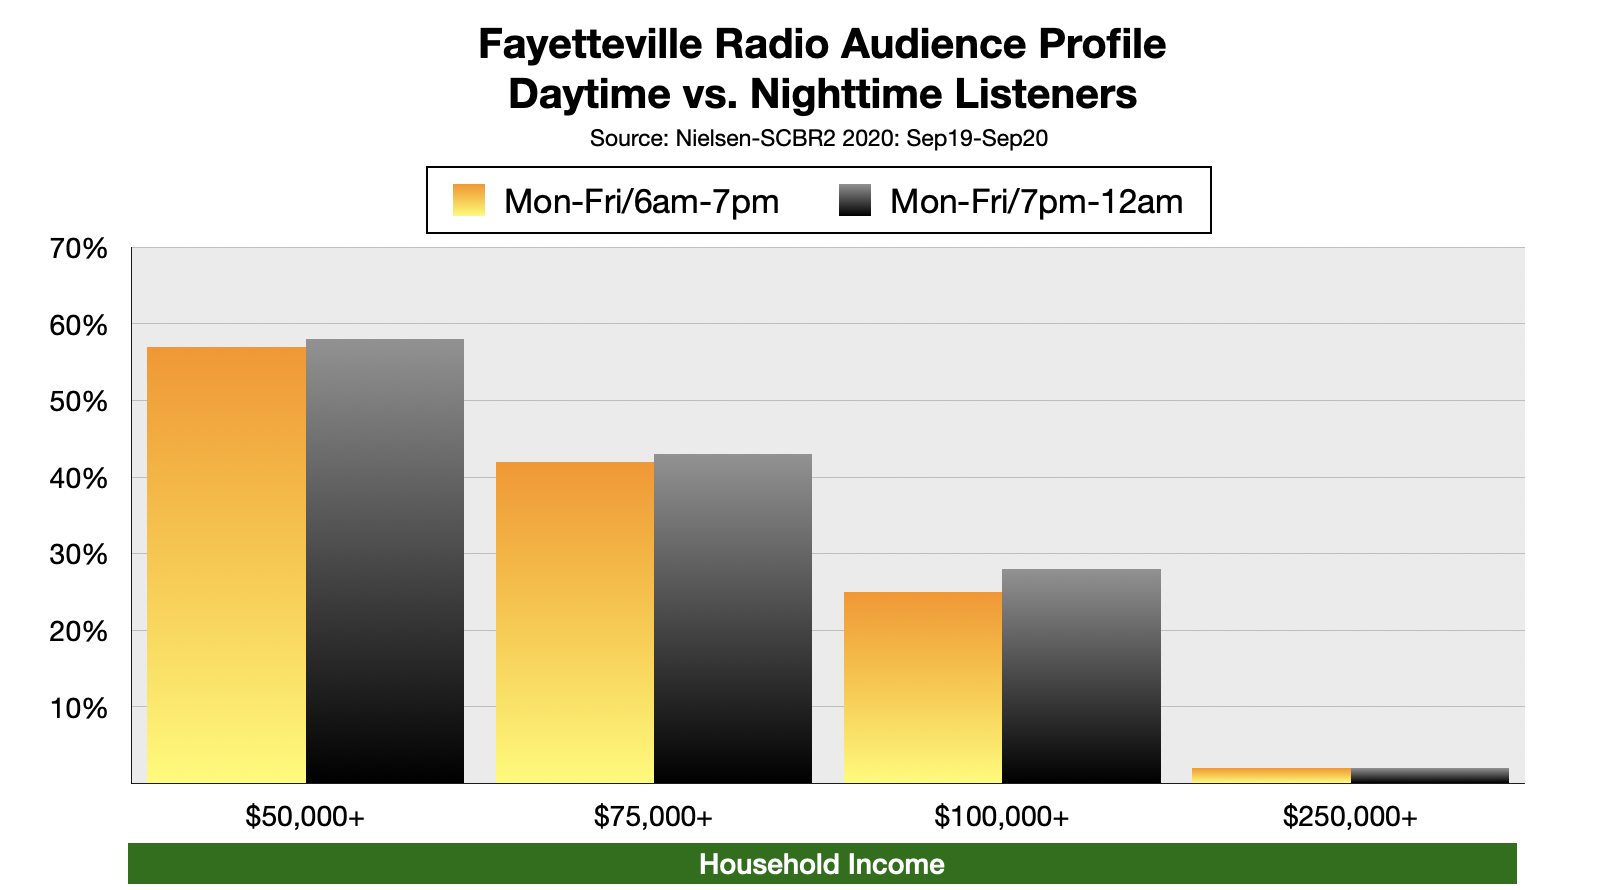 Advertising on Fayetteville, NC Radio: Nighttime Listening by Income